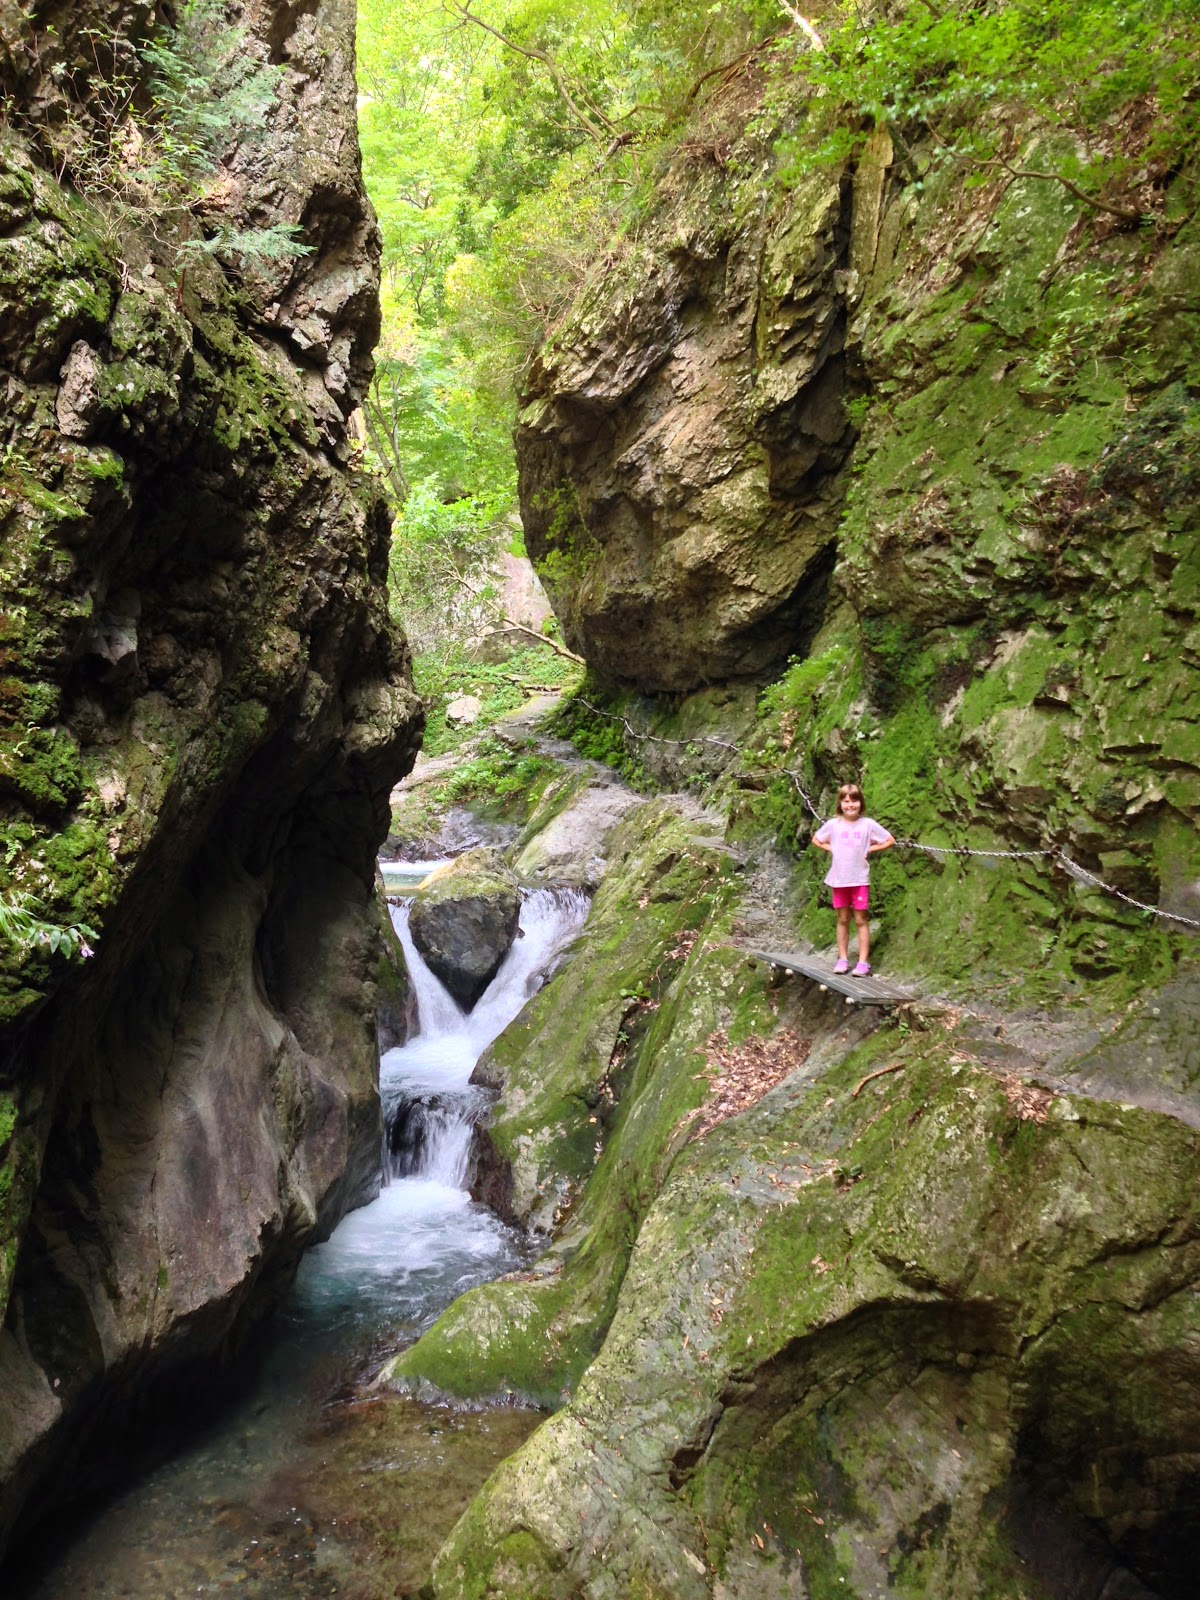 """<a href=""""http://vionm.com/"""">Thailand</a> <a href=""""http://vionm.com/things-to-do-in-bangkok-thailand/thailandhoneymoon-explore-the-beauty-of-koh-samui/"""">Beach</a>: A Lovely Hike To Hinohara Waterfall"""